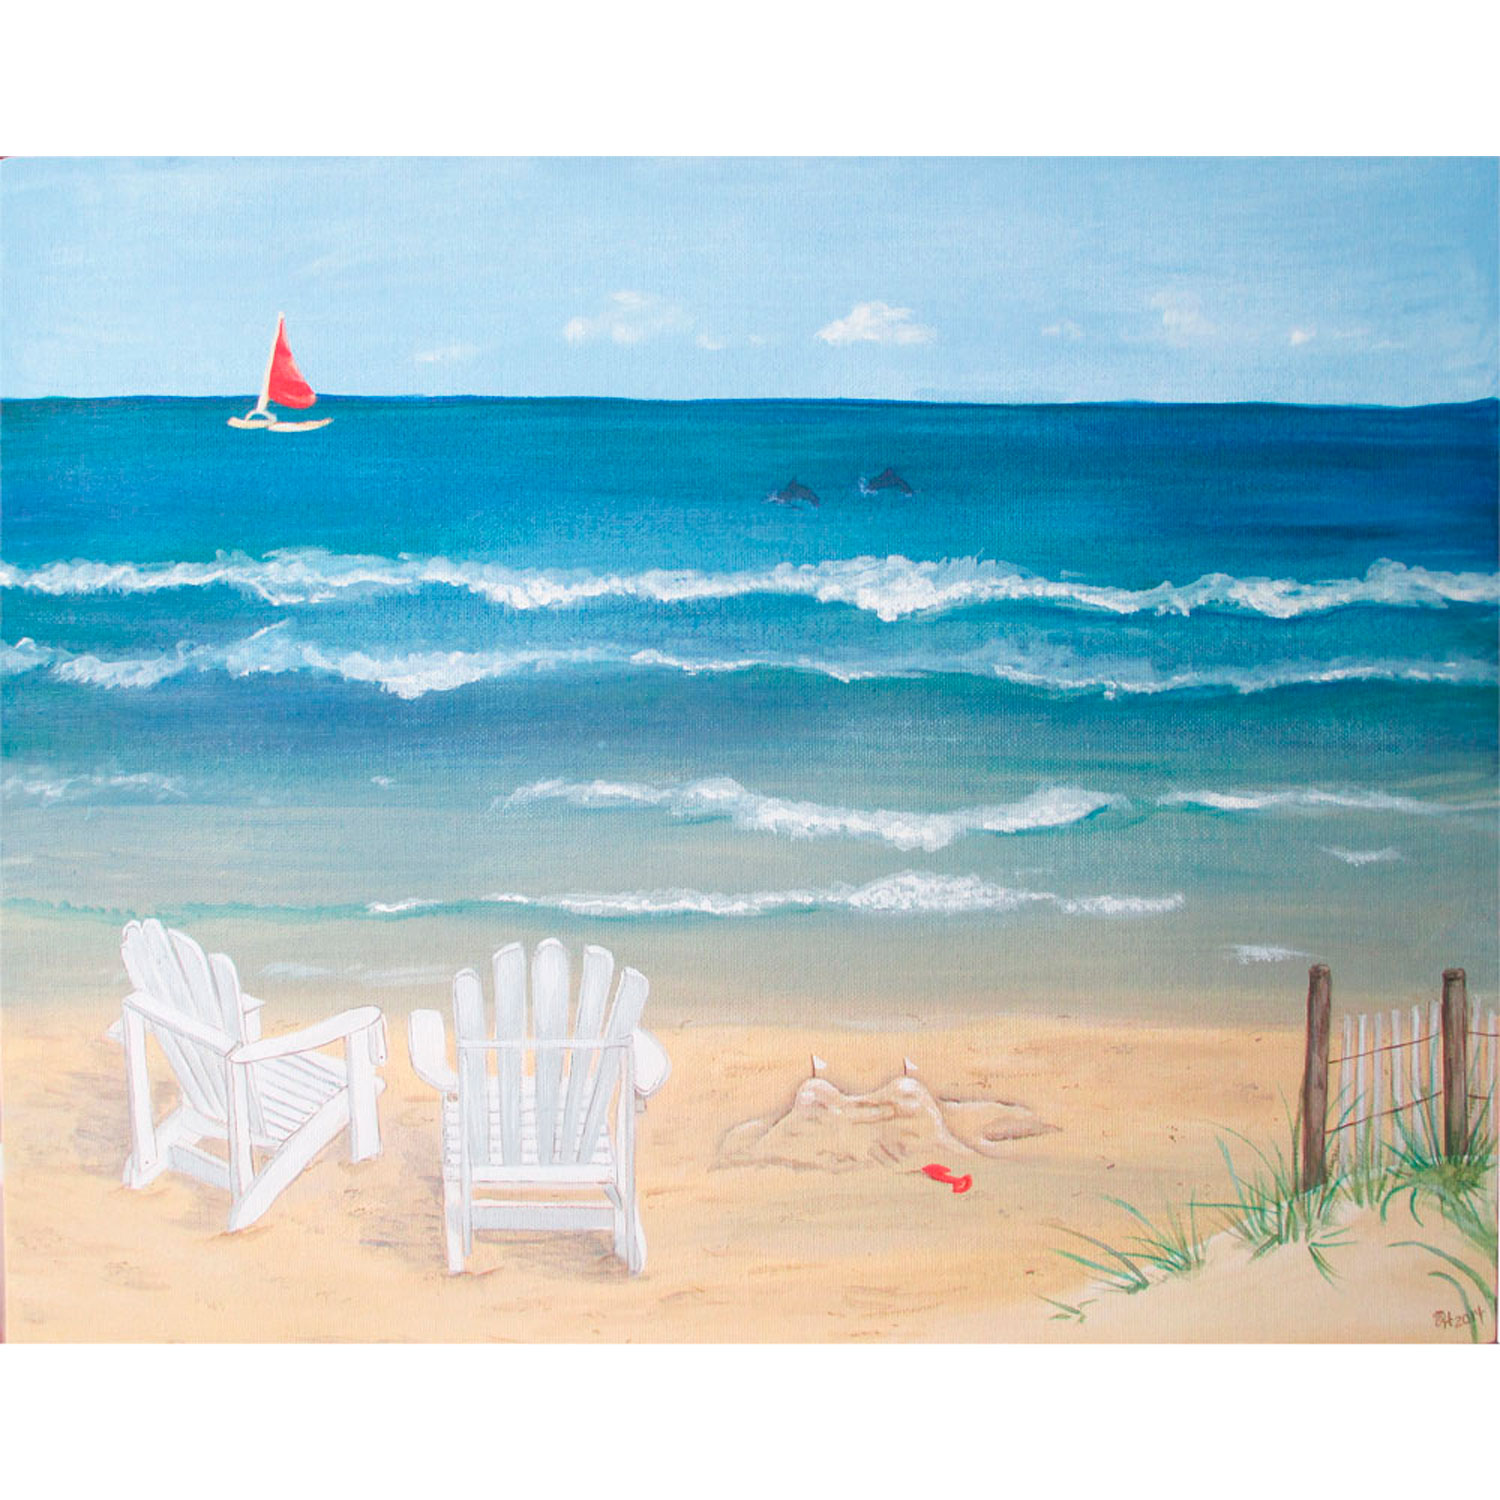 Painted Beach Picture of Hilton Head Island